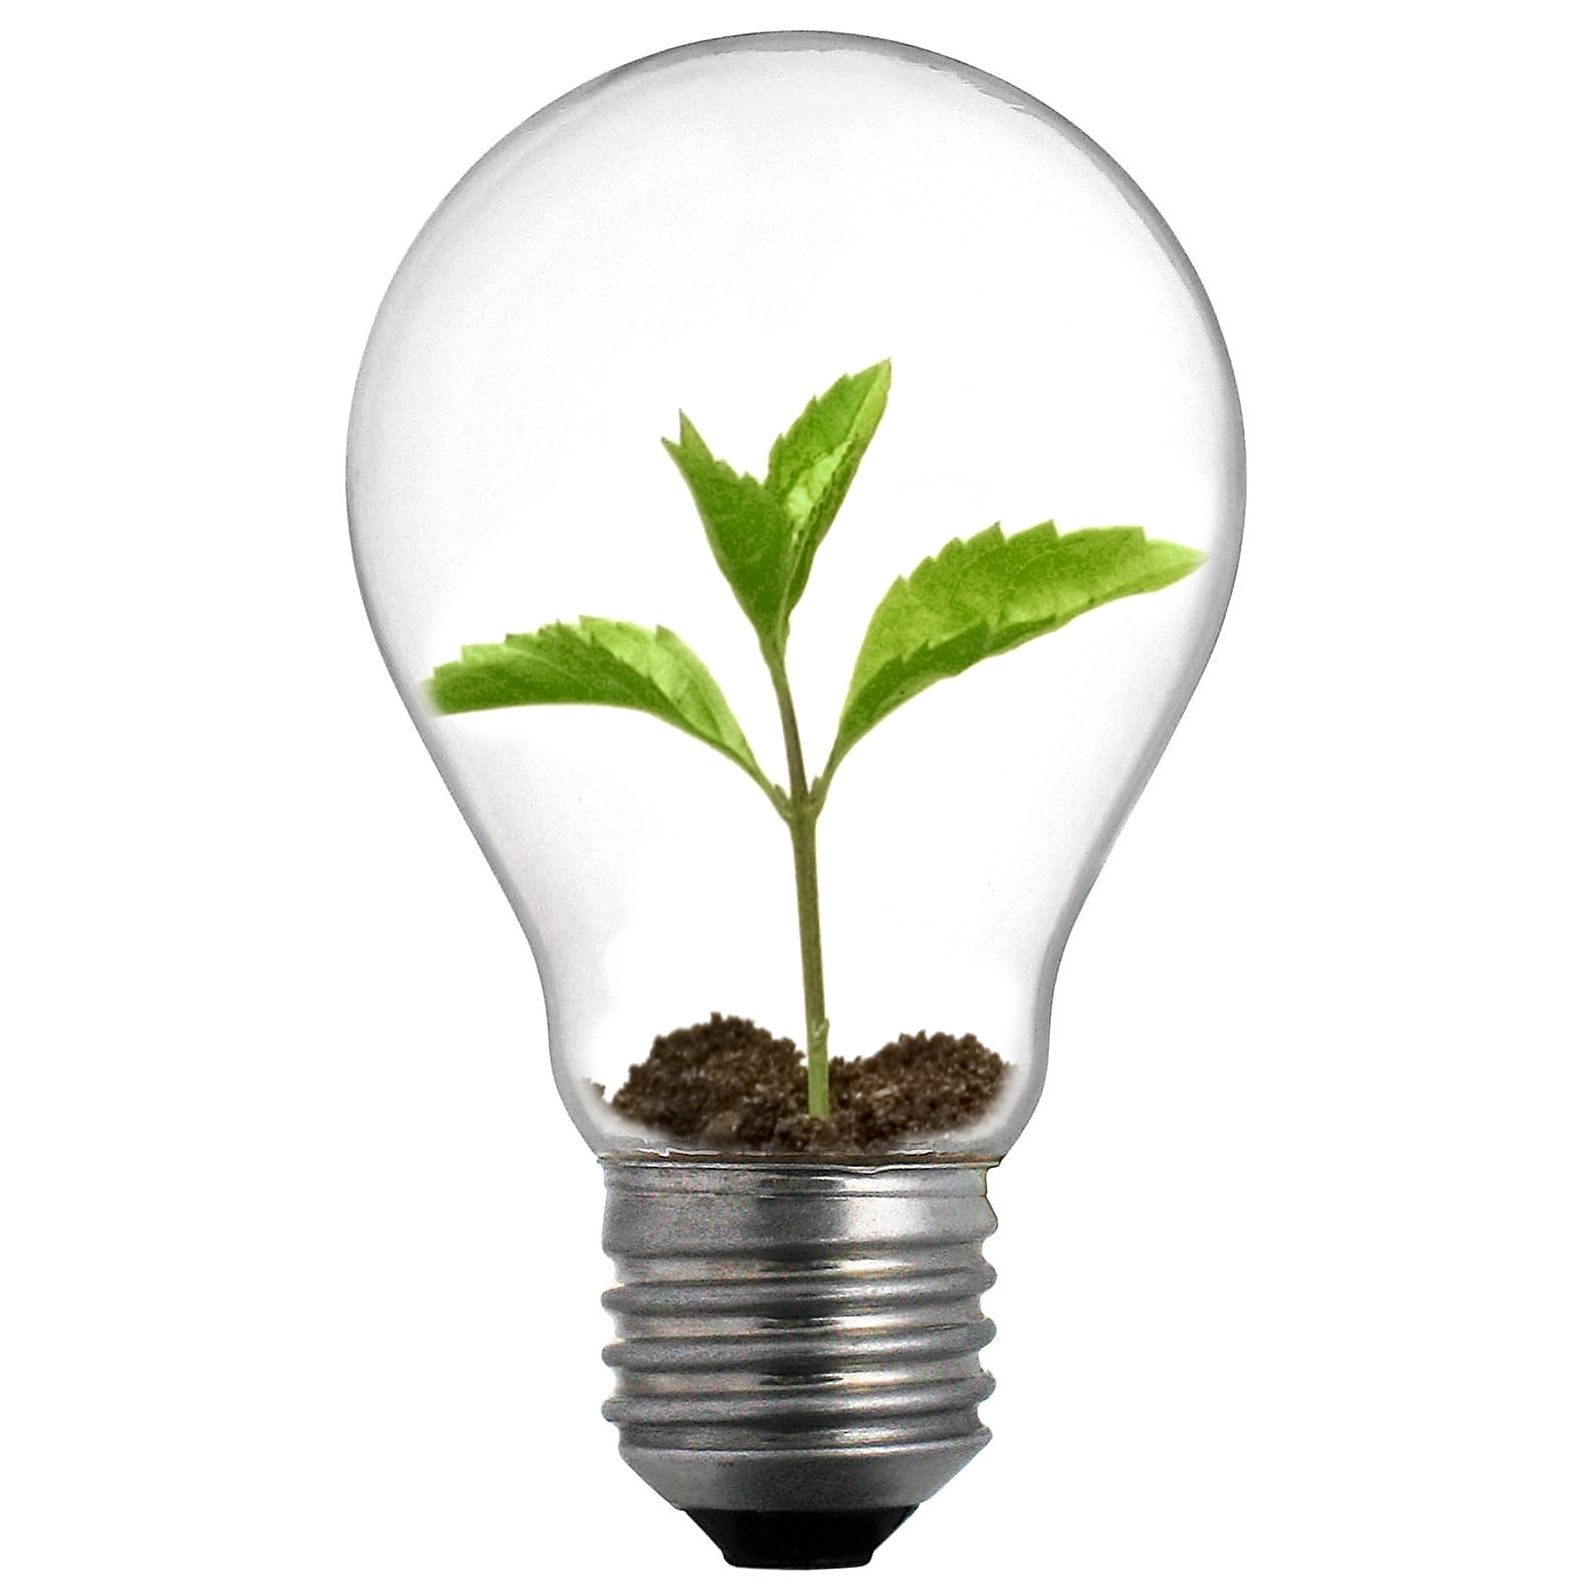 eco-friendly-bulbs.jpg